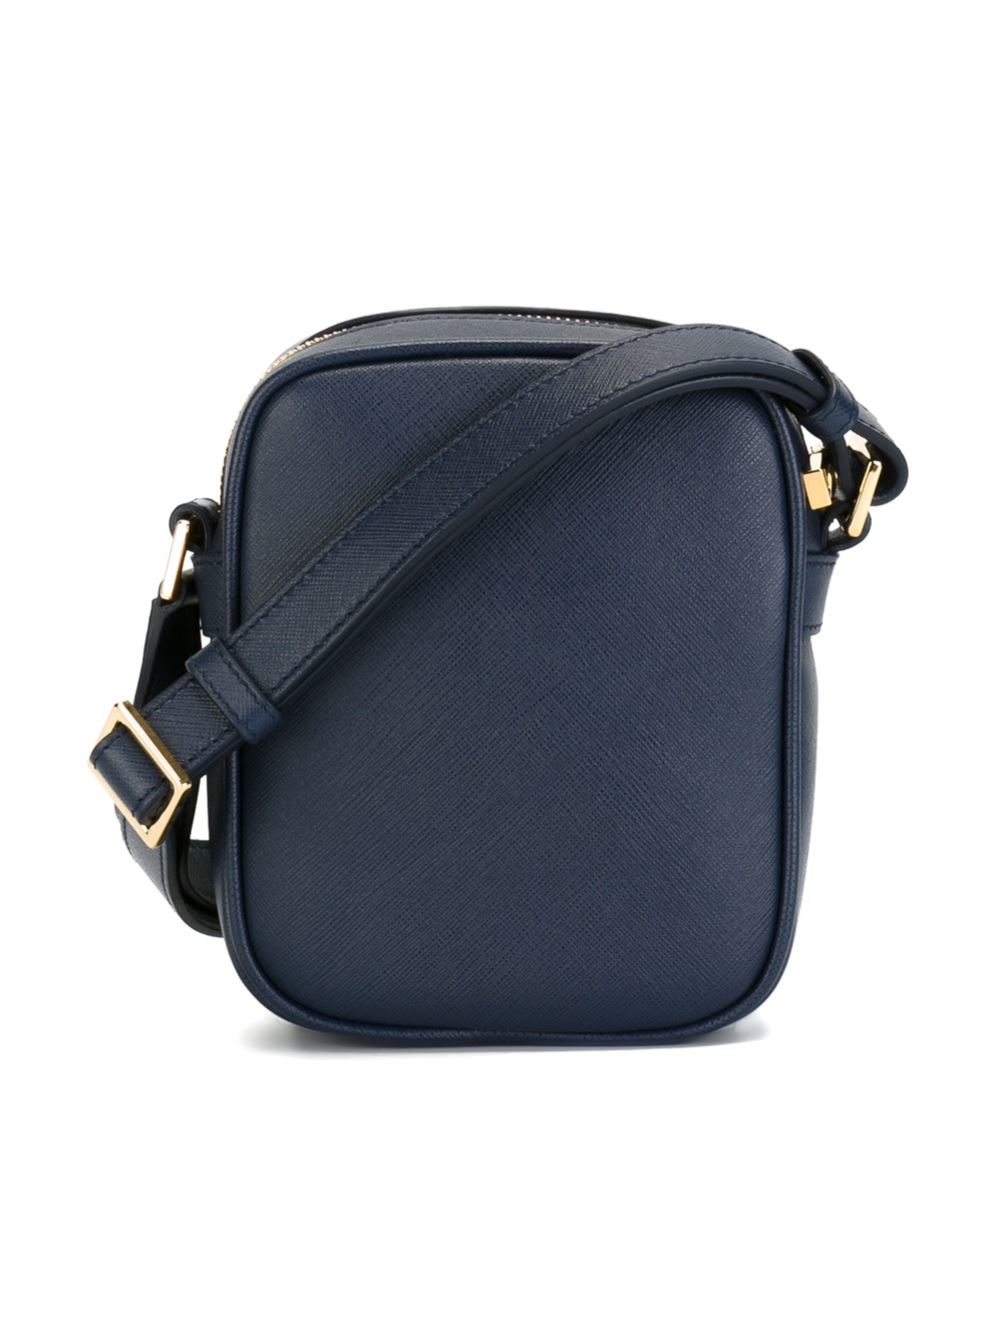 Find great deals on eBay for versace men bag. Shop with confidence.